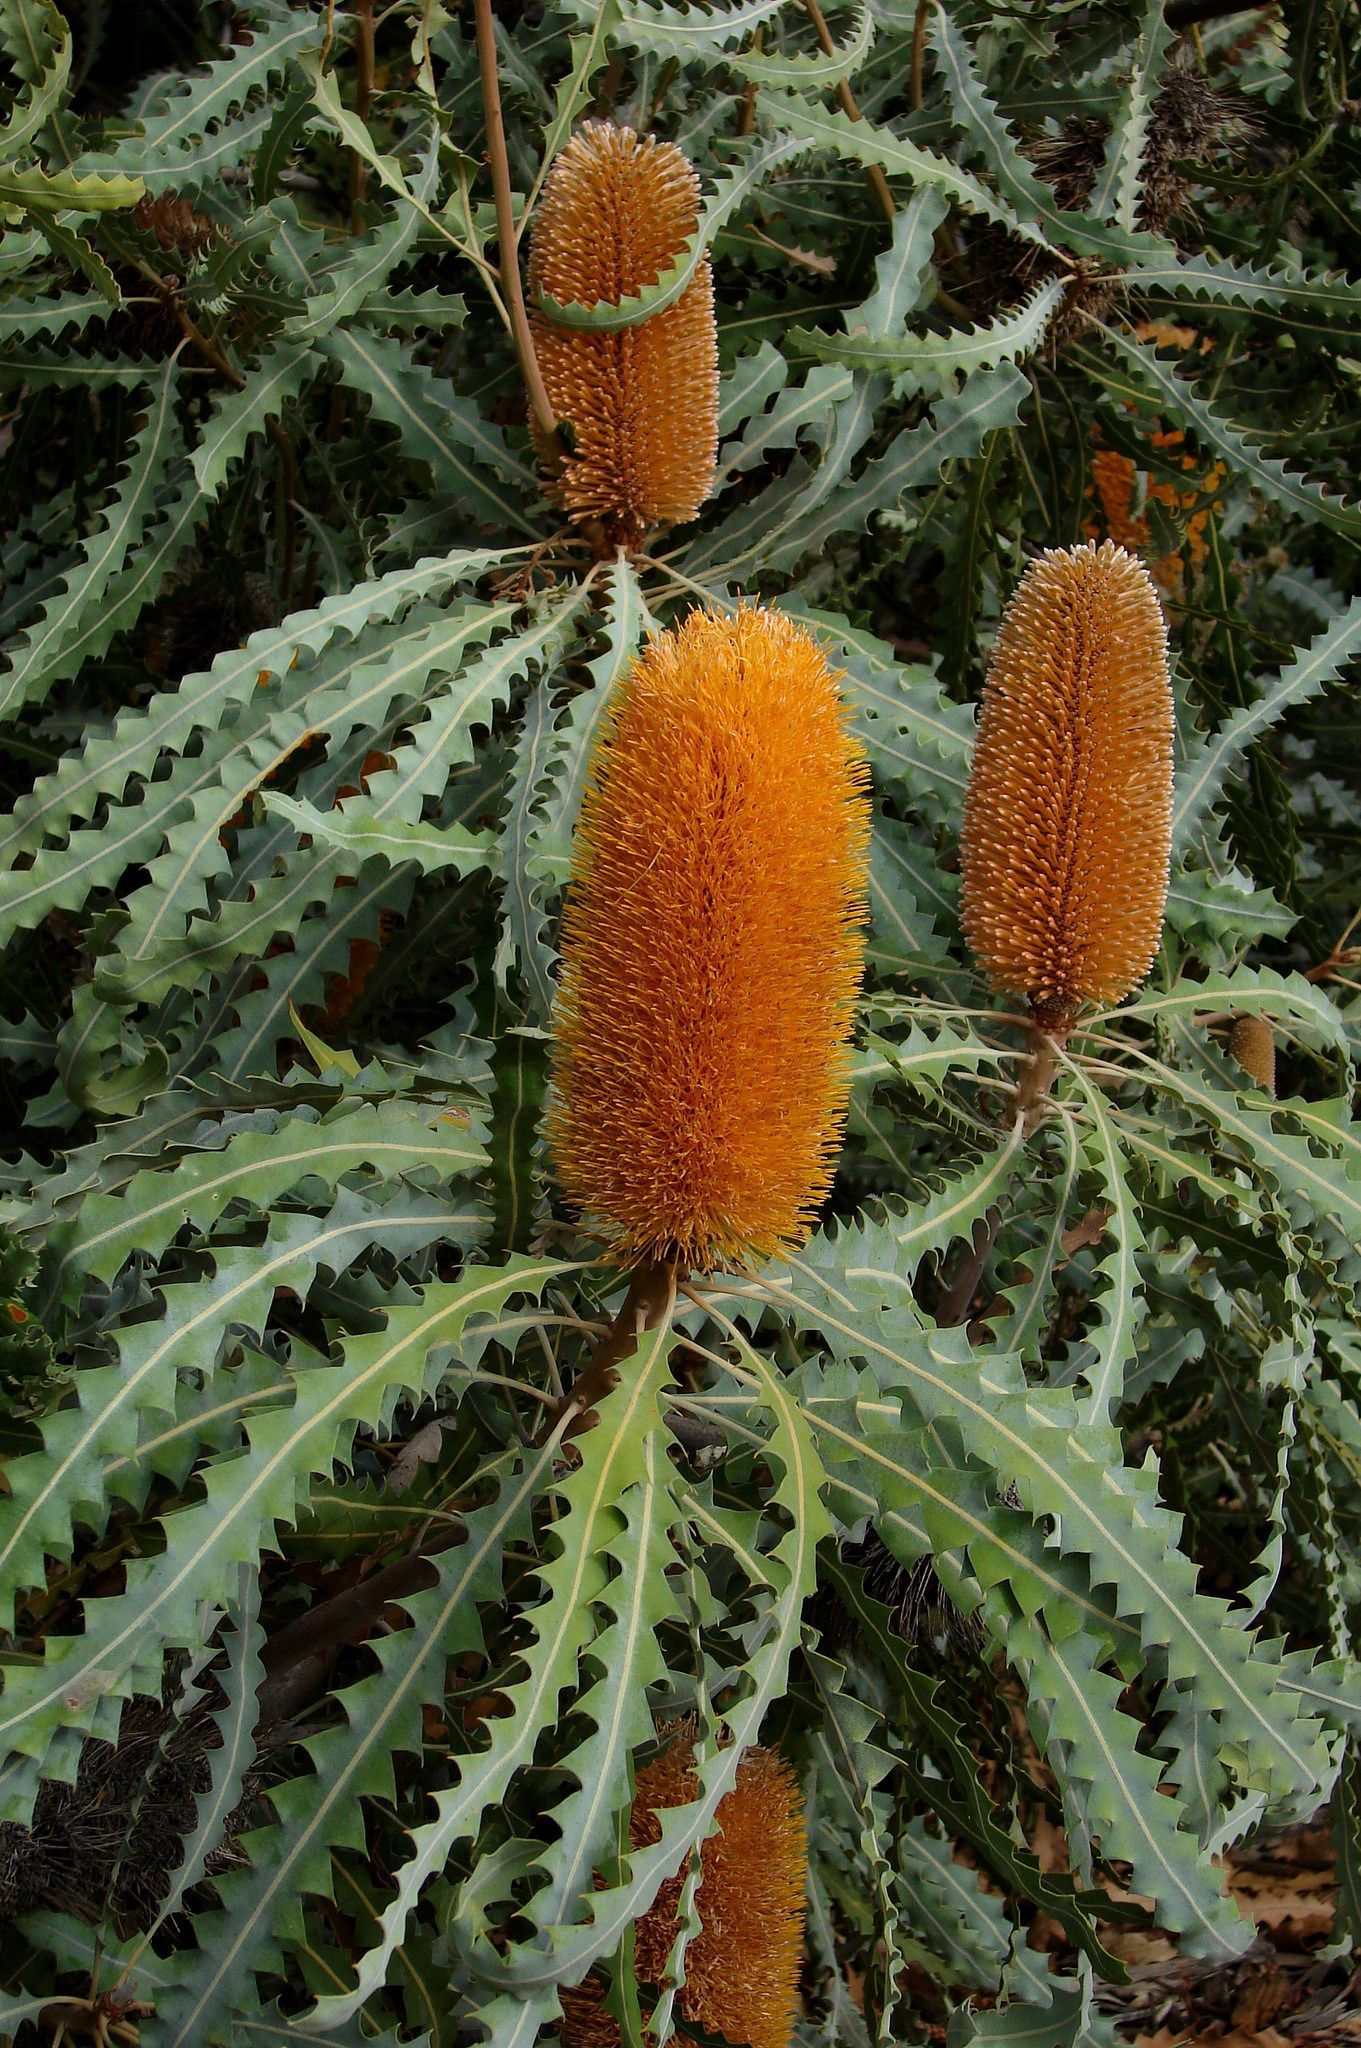 Ashbys Banksia Banksia Ashbyi The Shrub Grows Up To 4 M High And 2 M Wide Native To Western Australia Australian Native Flowers Australian Flowers Australian Plants